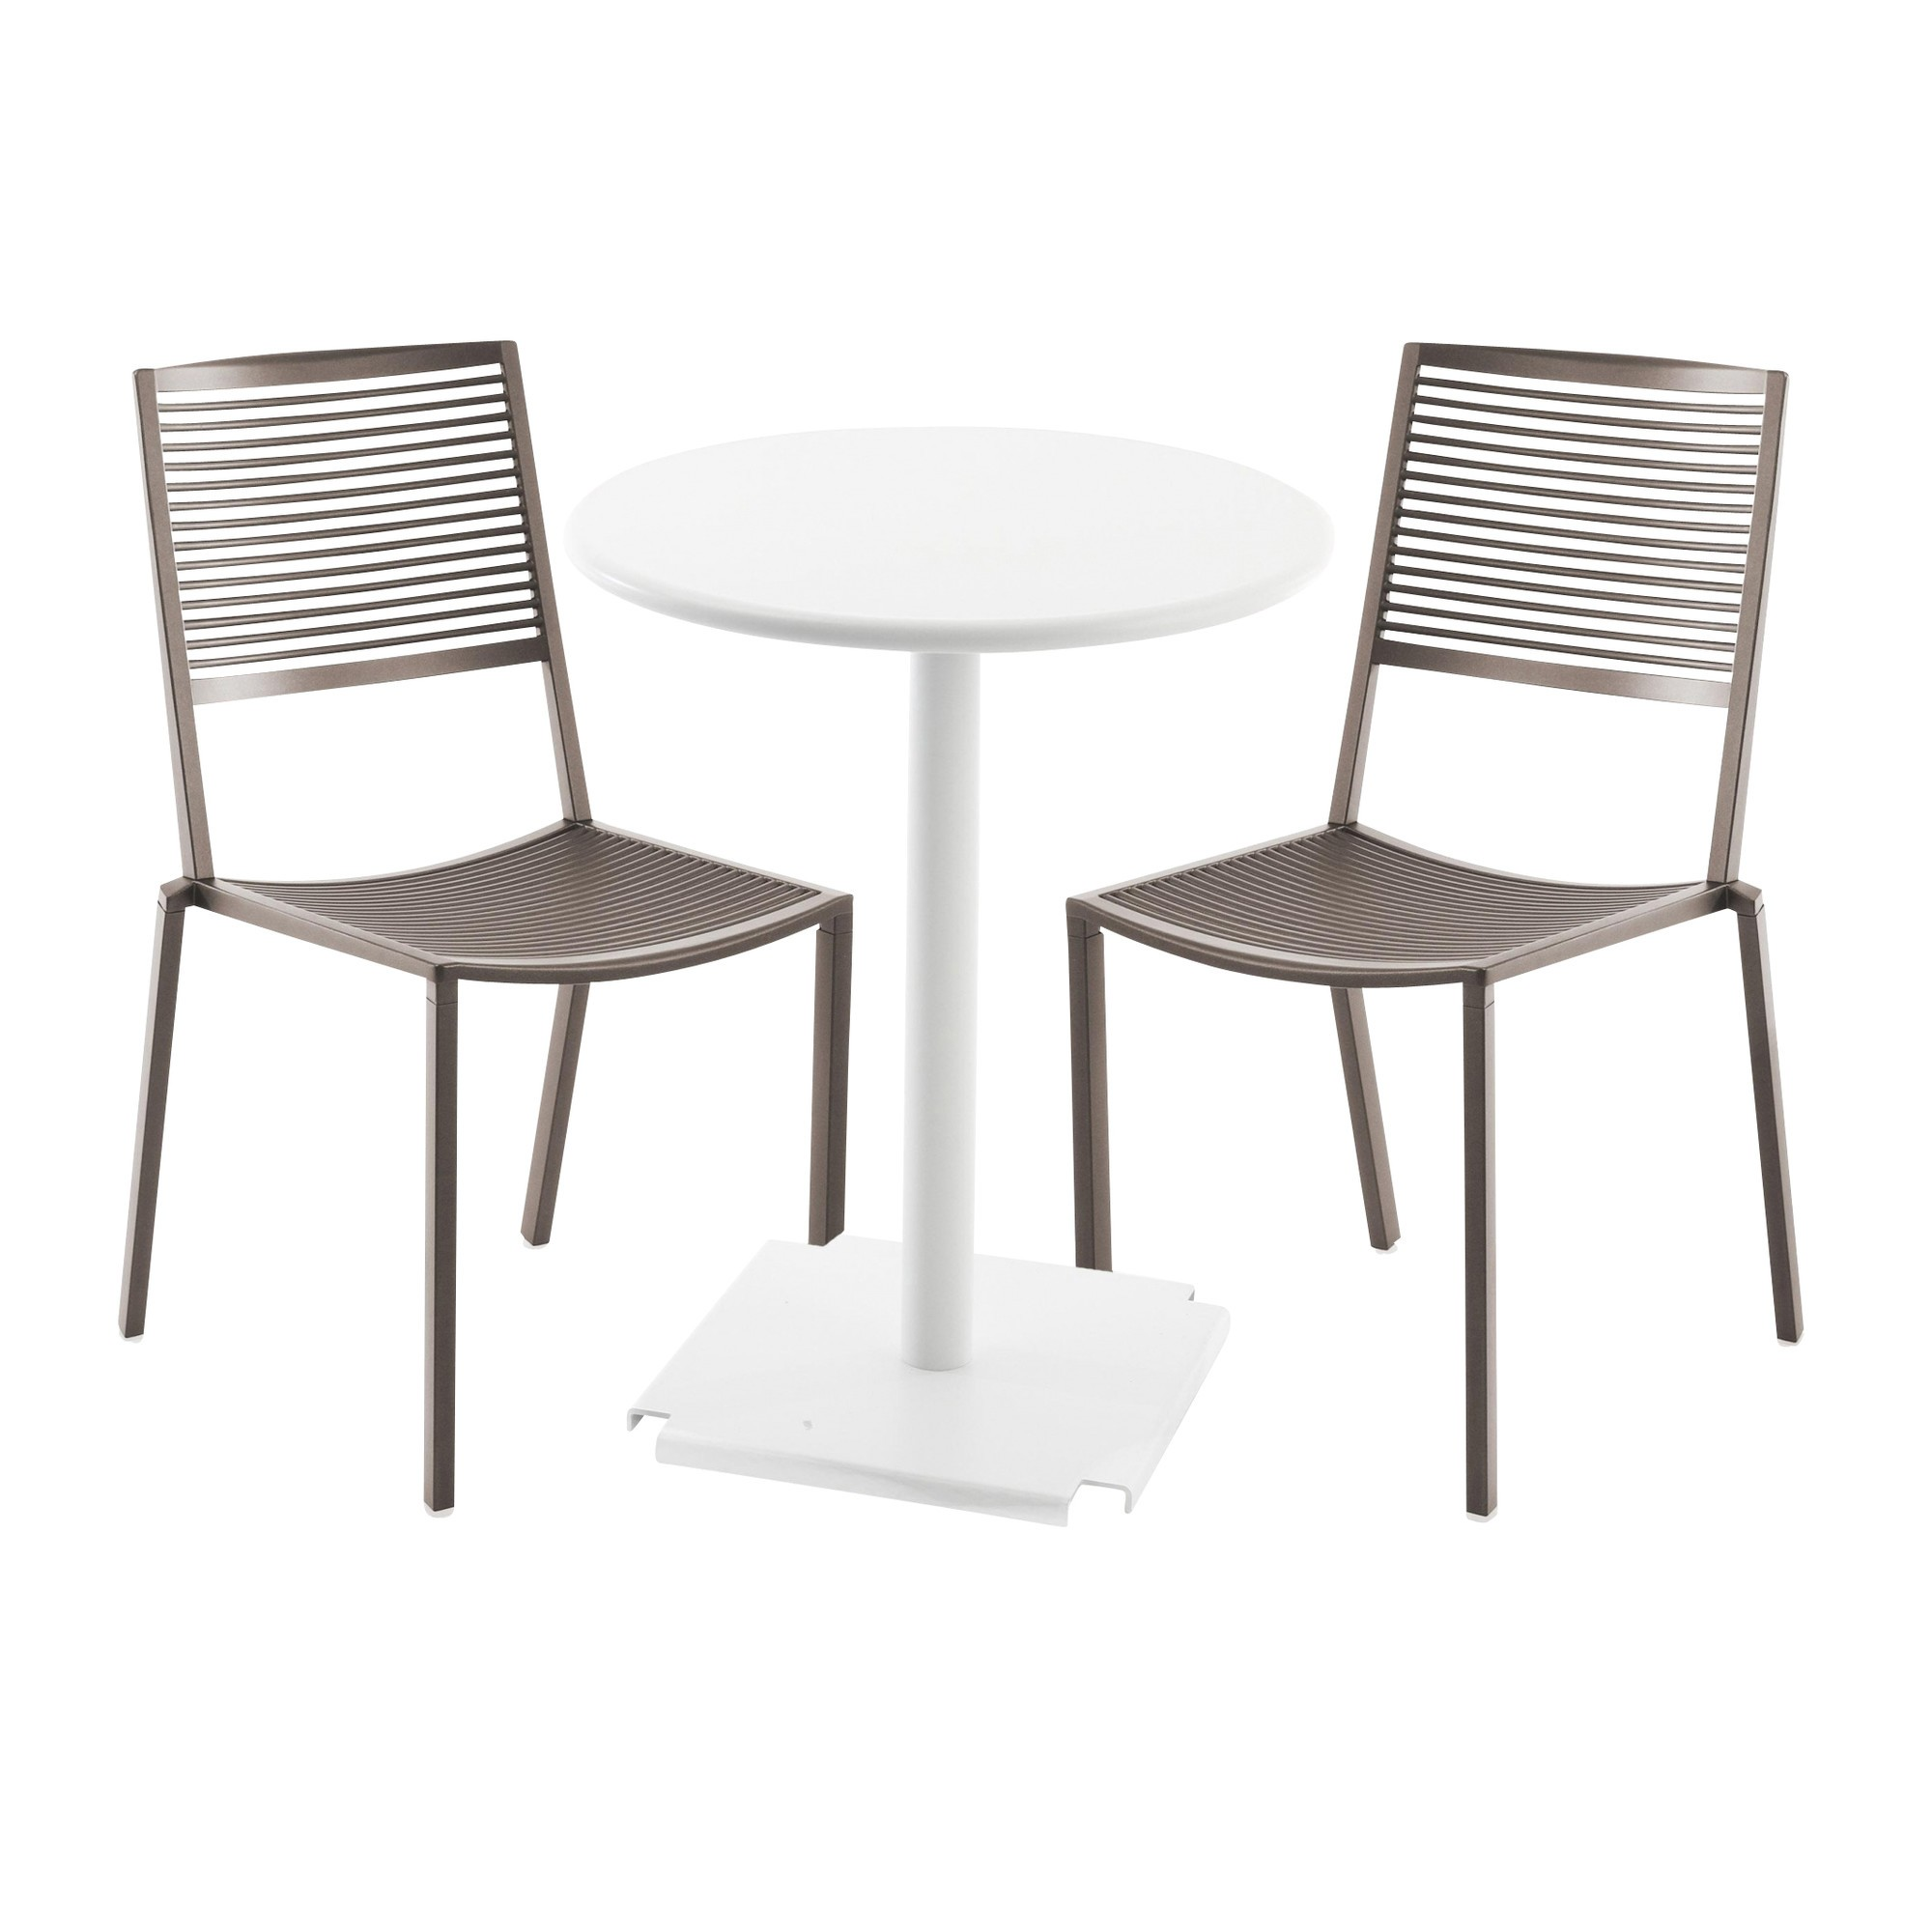 Easy Crosstonic Outdoor Set